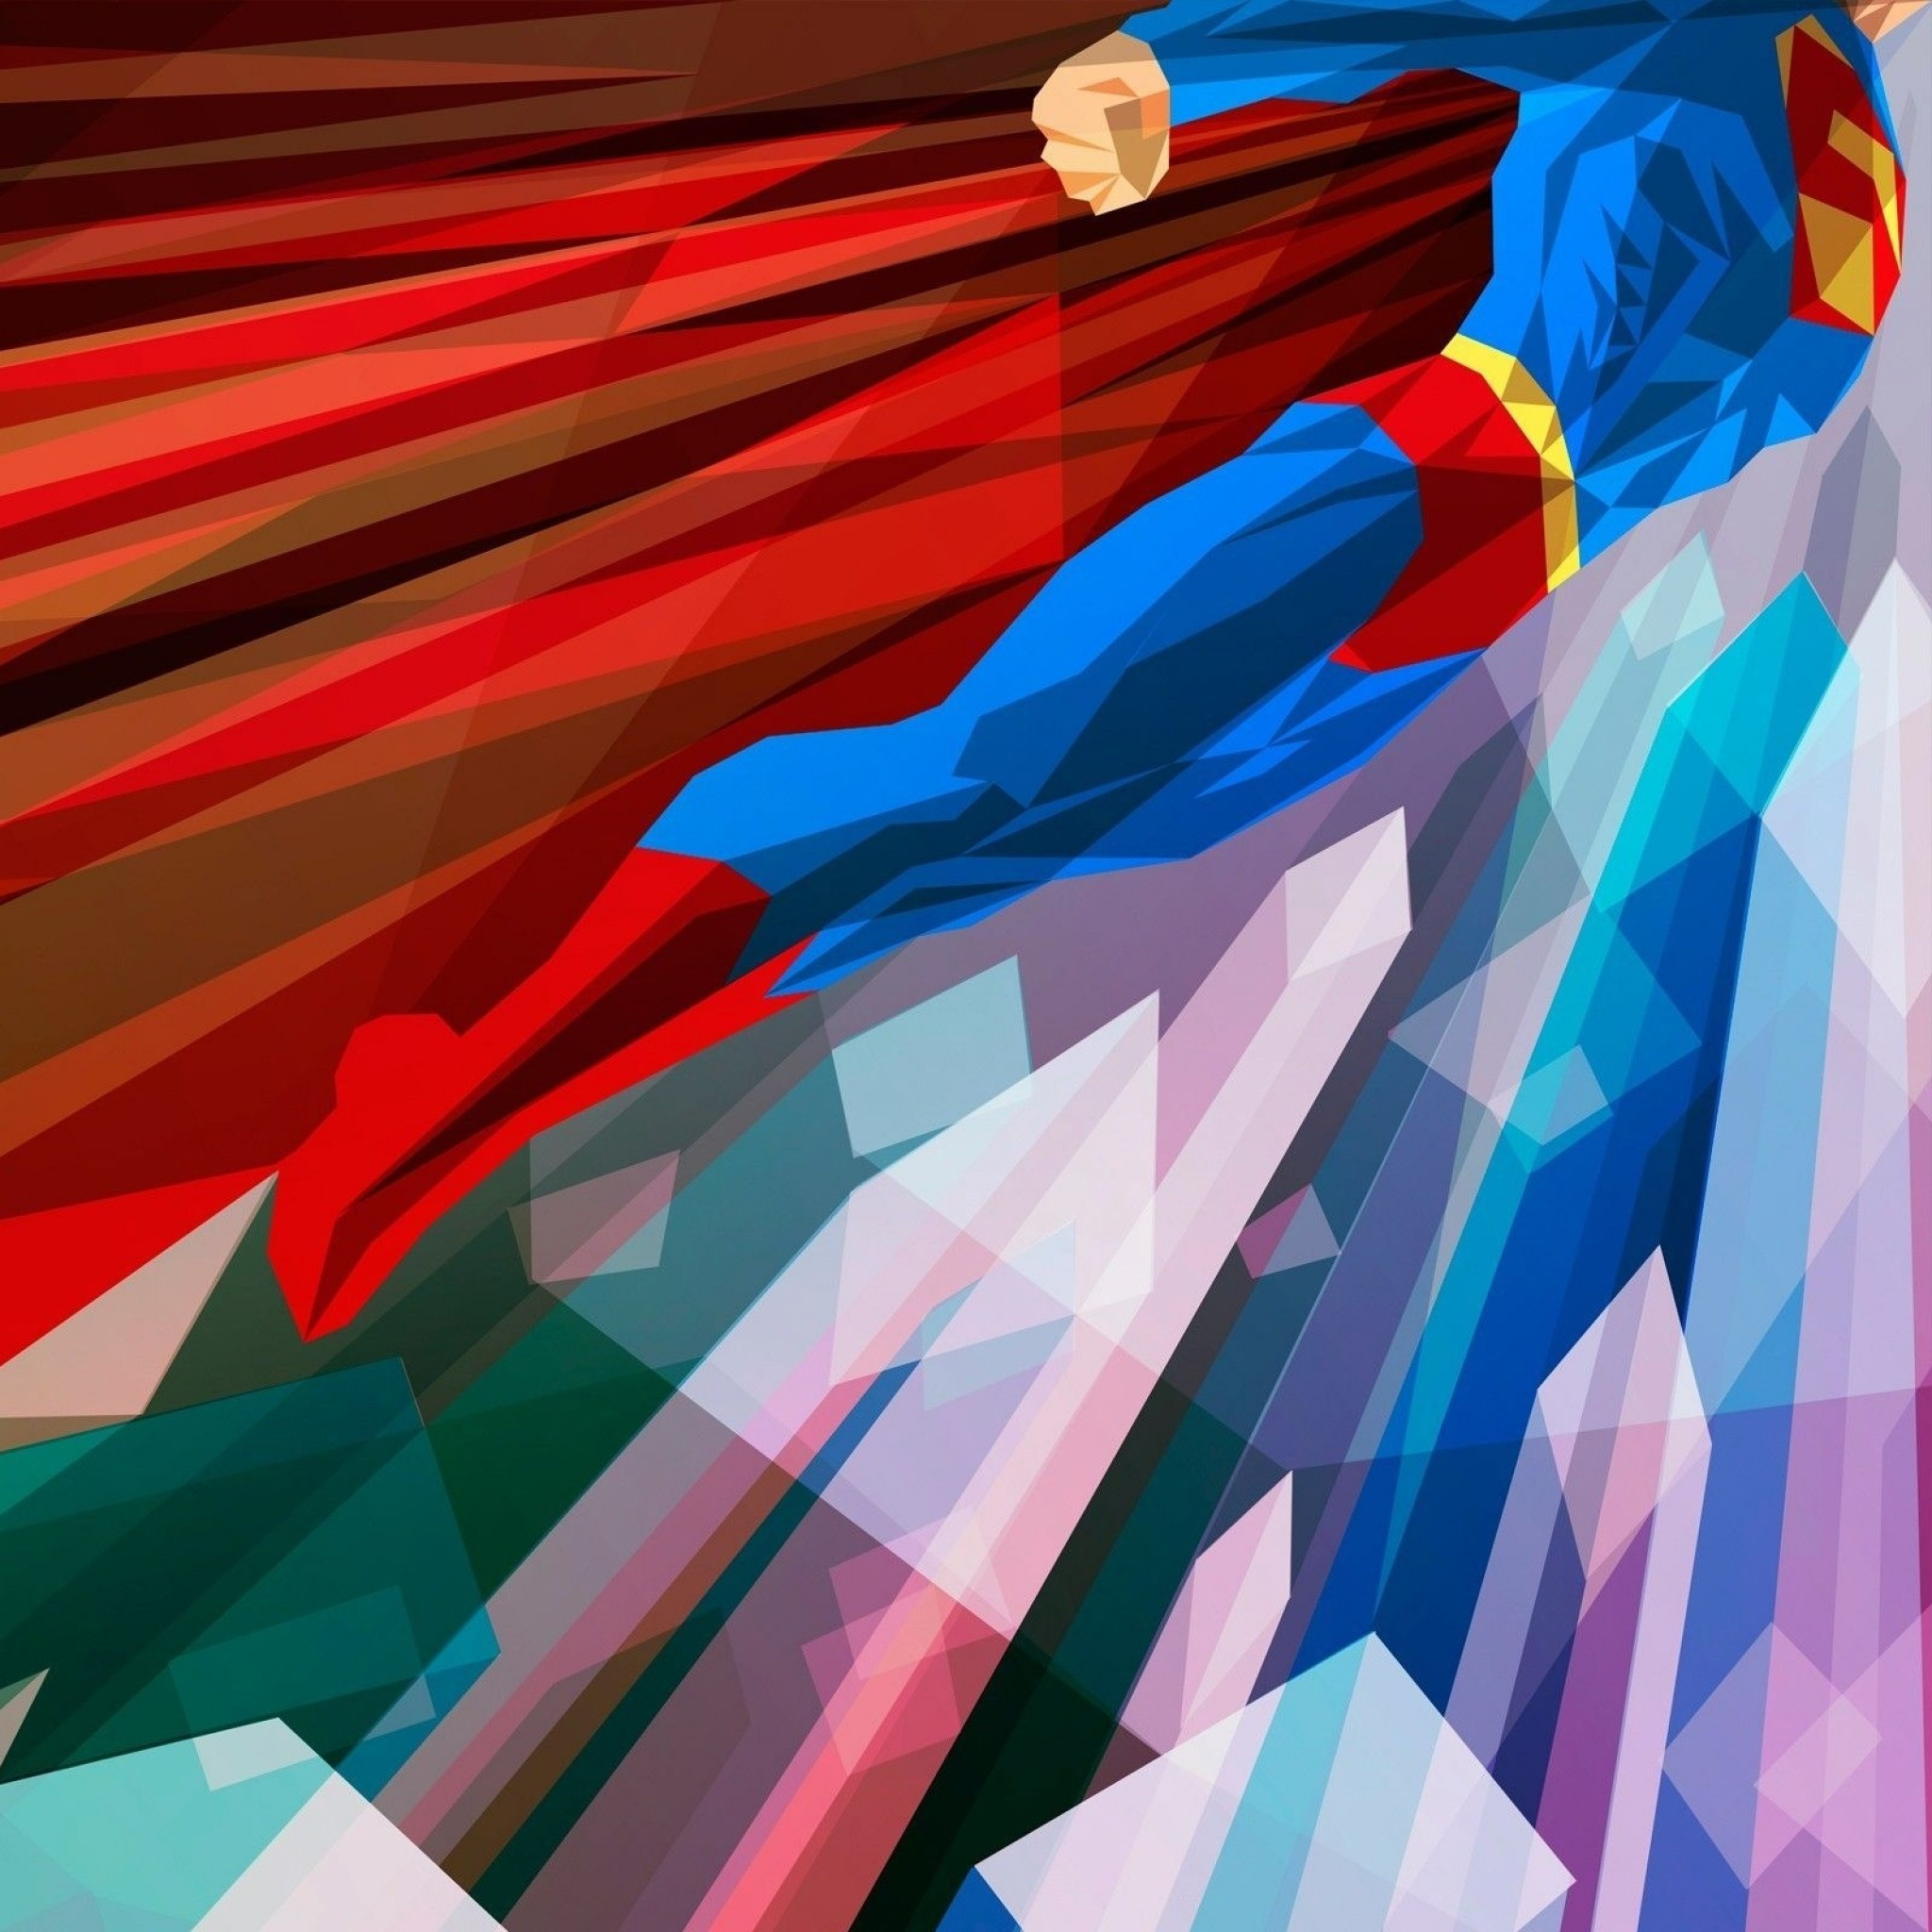 2048x2048 Preview wallpaper superhero, superman, bright